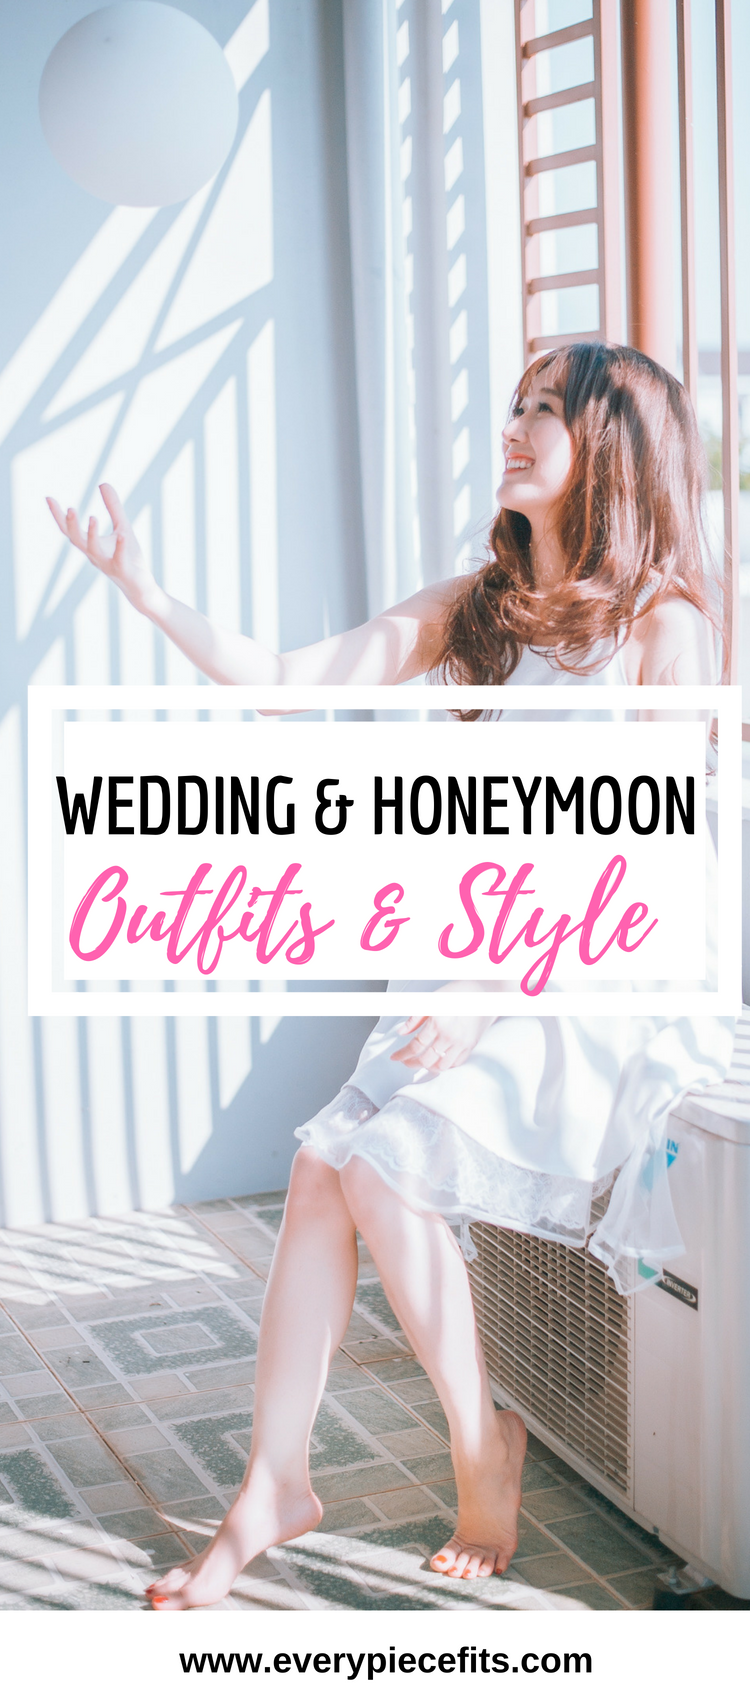 Wedding & Honeymoon outfits & style.png